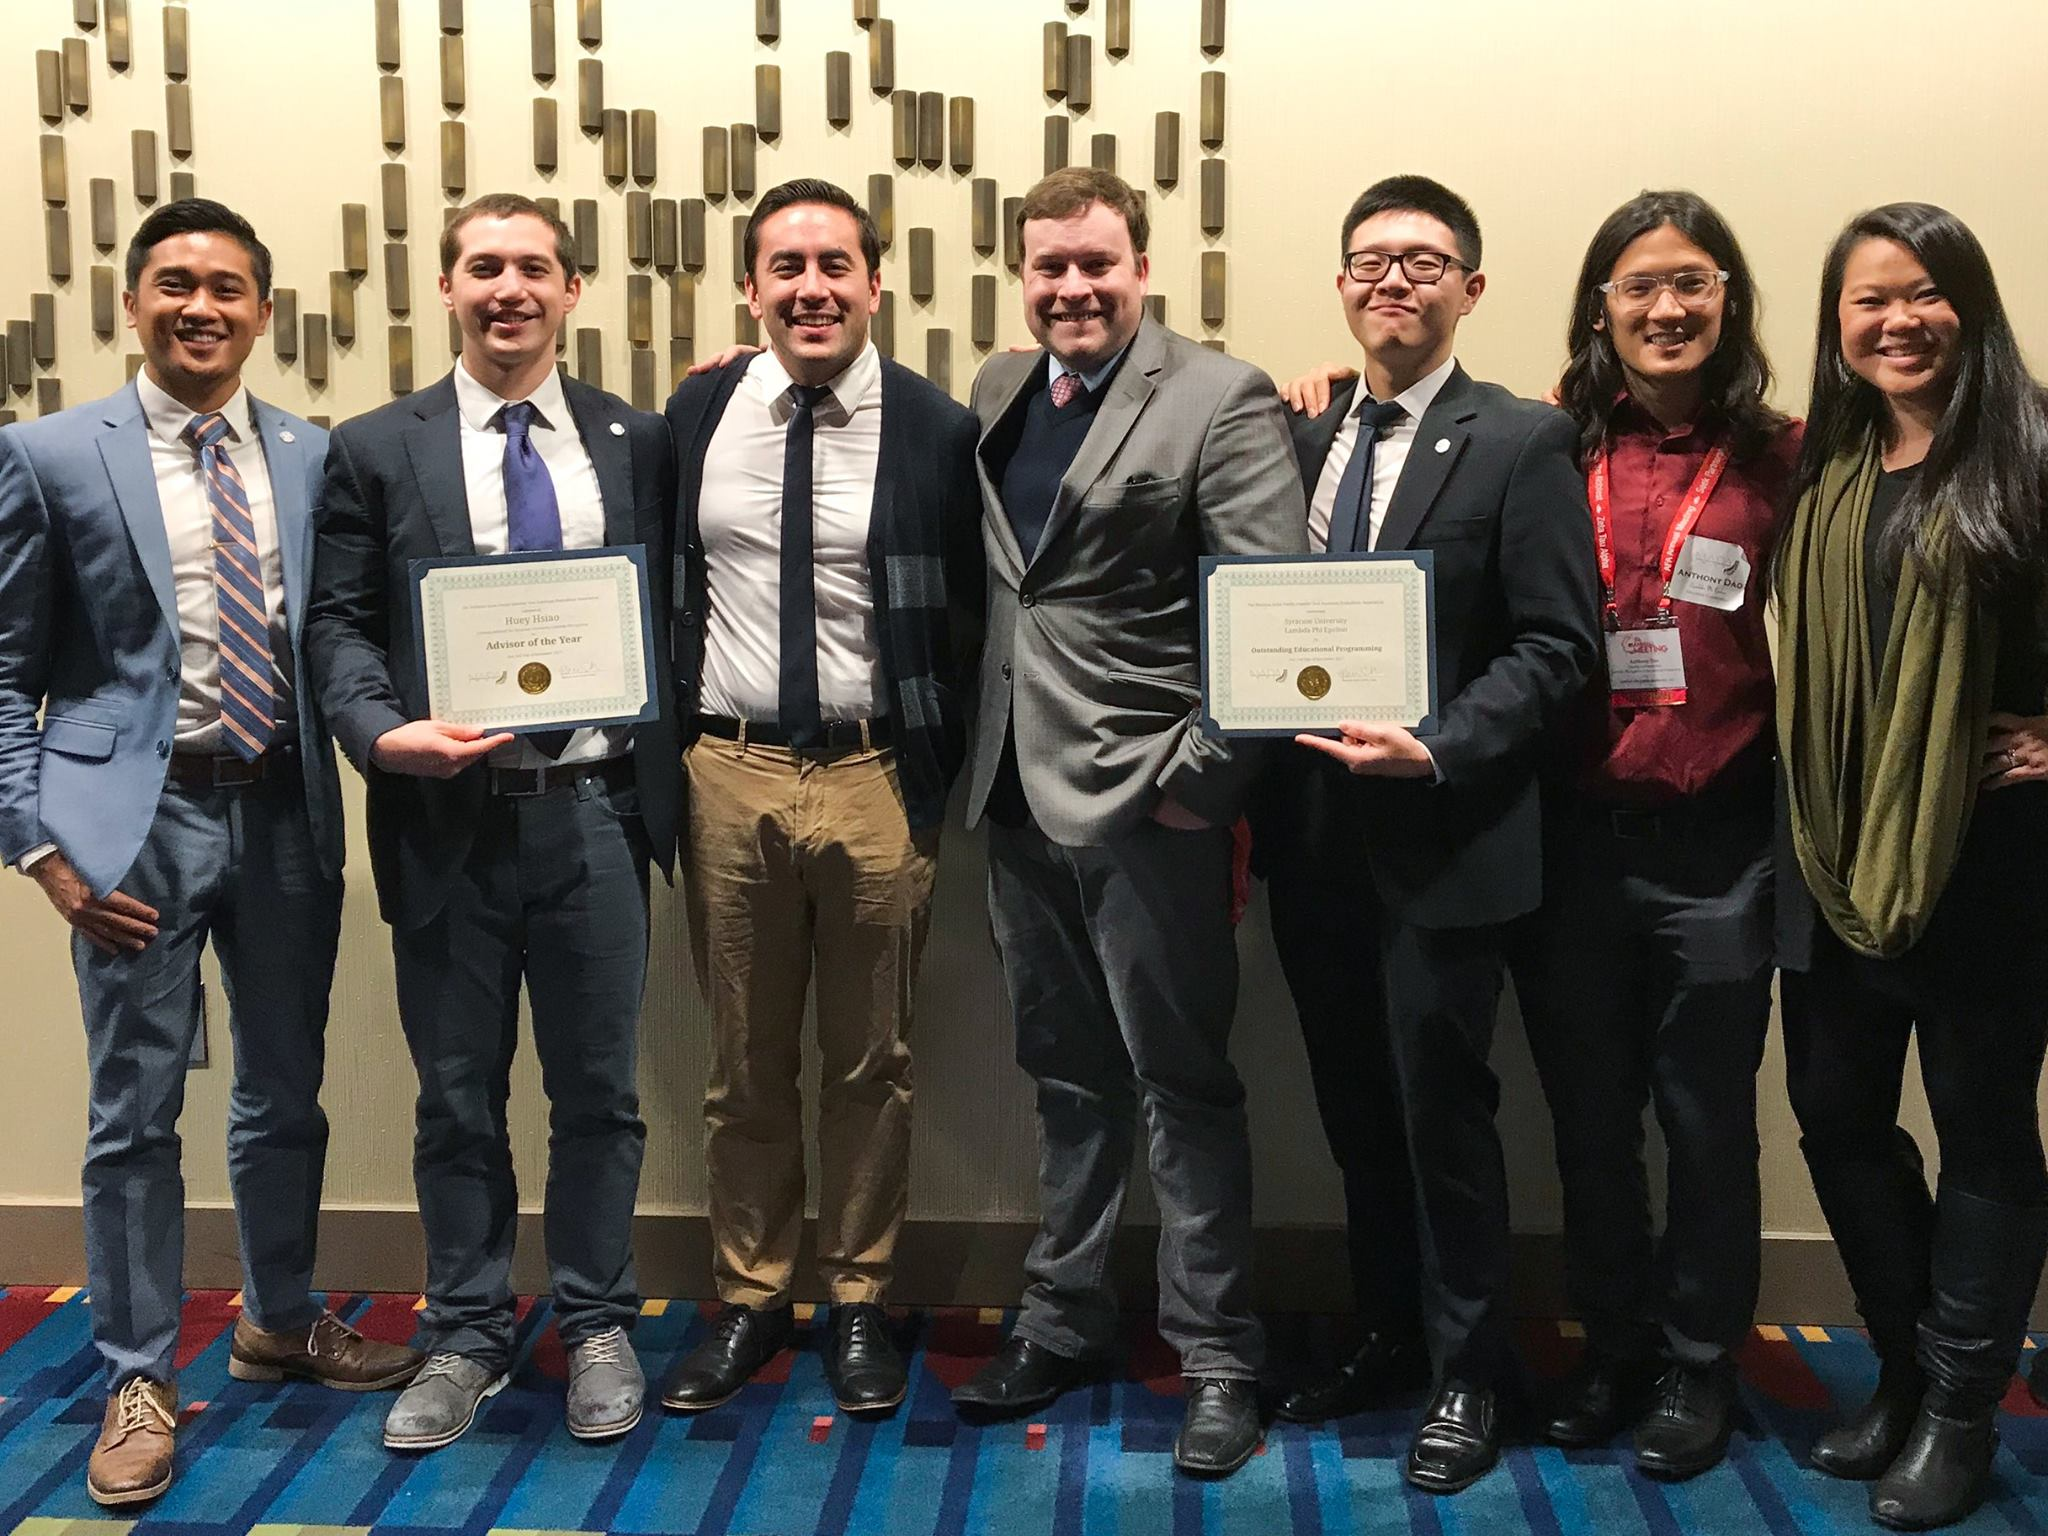 Lambda Phi Epsilon wins awards from the National APIDA Panhellenic Association